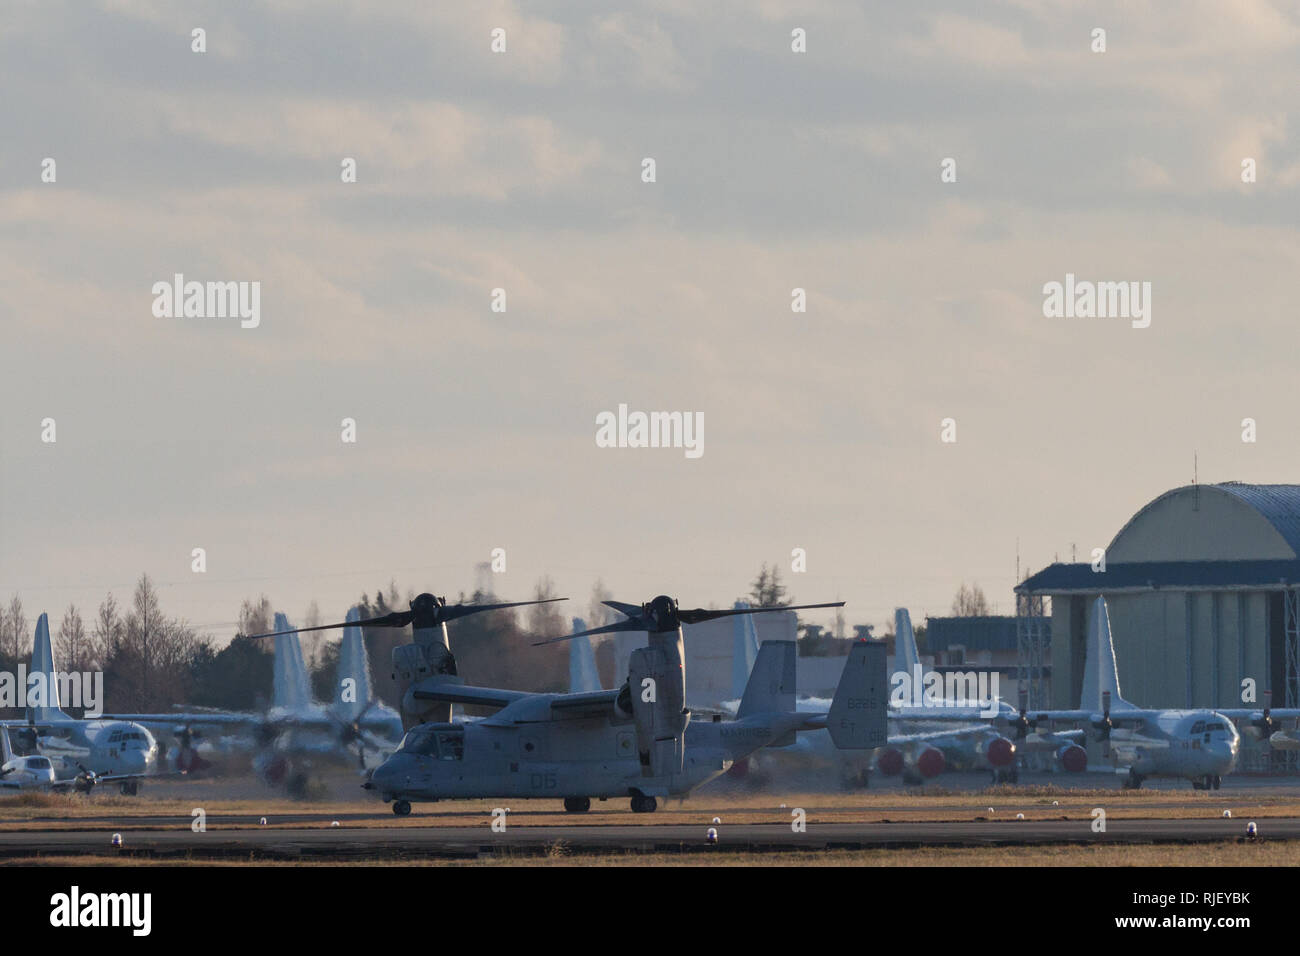 A  Bell Boeing V22 Osprey tilt-rotor aircraft with the US Marines, prepares for take off from Naval Air Facility Atsugi in Yamato, Kanagawa, Japan. Fr - Stock Image